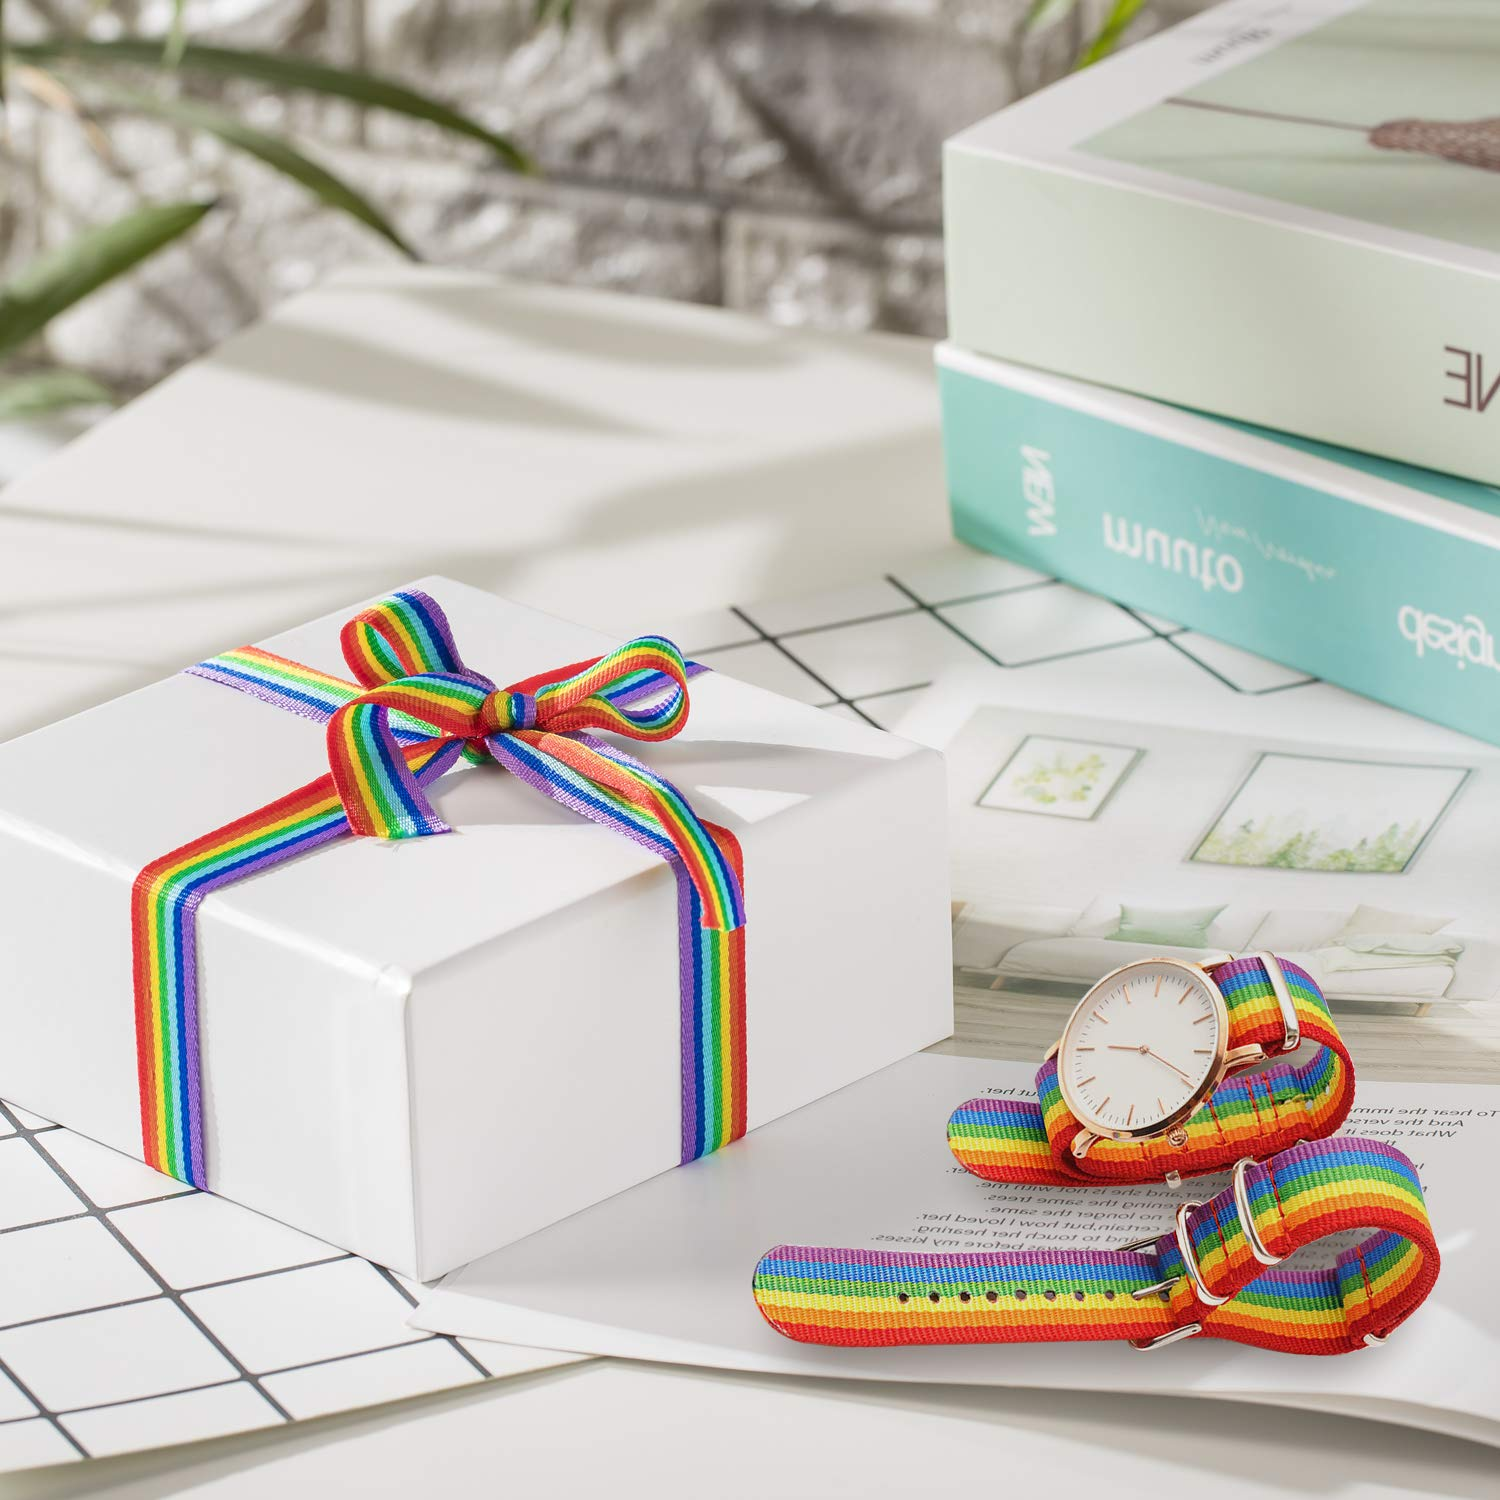 Whaline 60 Yards 55 Meters Rainbow Grosgrain Ribbons Double Sided Rainbow Stripes Ribbons for Wrapping Gift Party Decoration DIY Handmade Crafts 1cm, 1.5cm, 2.5cm in Width